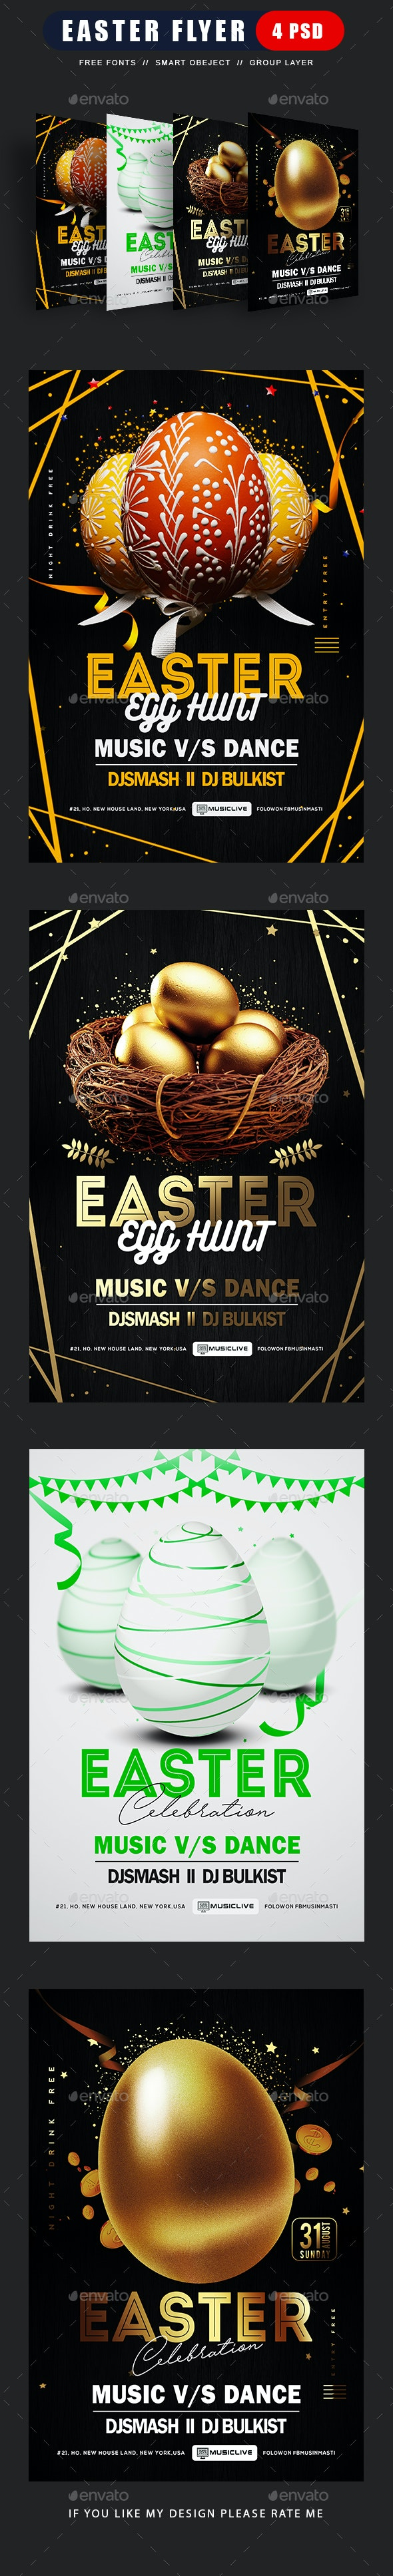 Easter Egg Hunt Event Flyer Bundle - Clubs & Parties Events